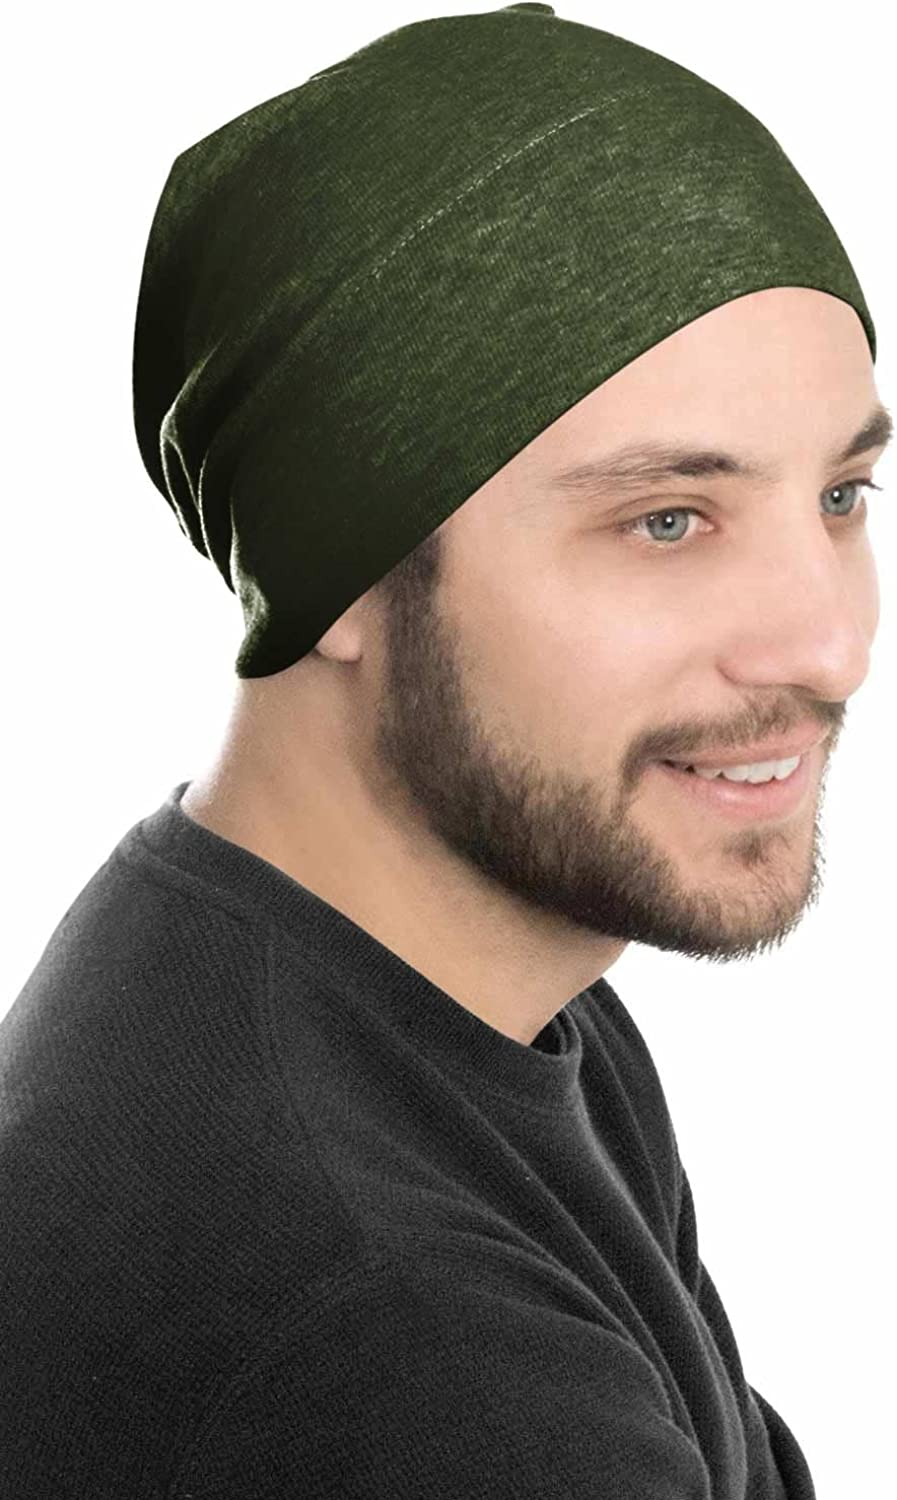 Headcovers Unlimited Mens Relaxed Beanie 100/% Cotton Beanie Hats for Guys